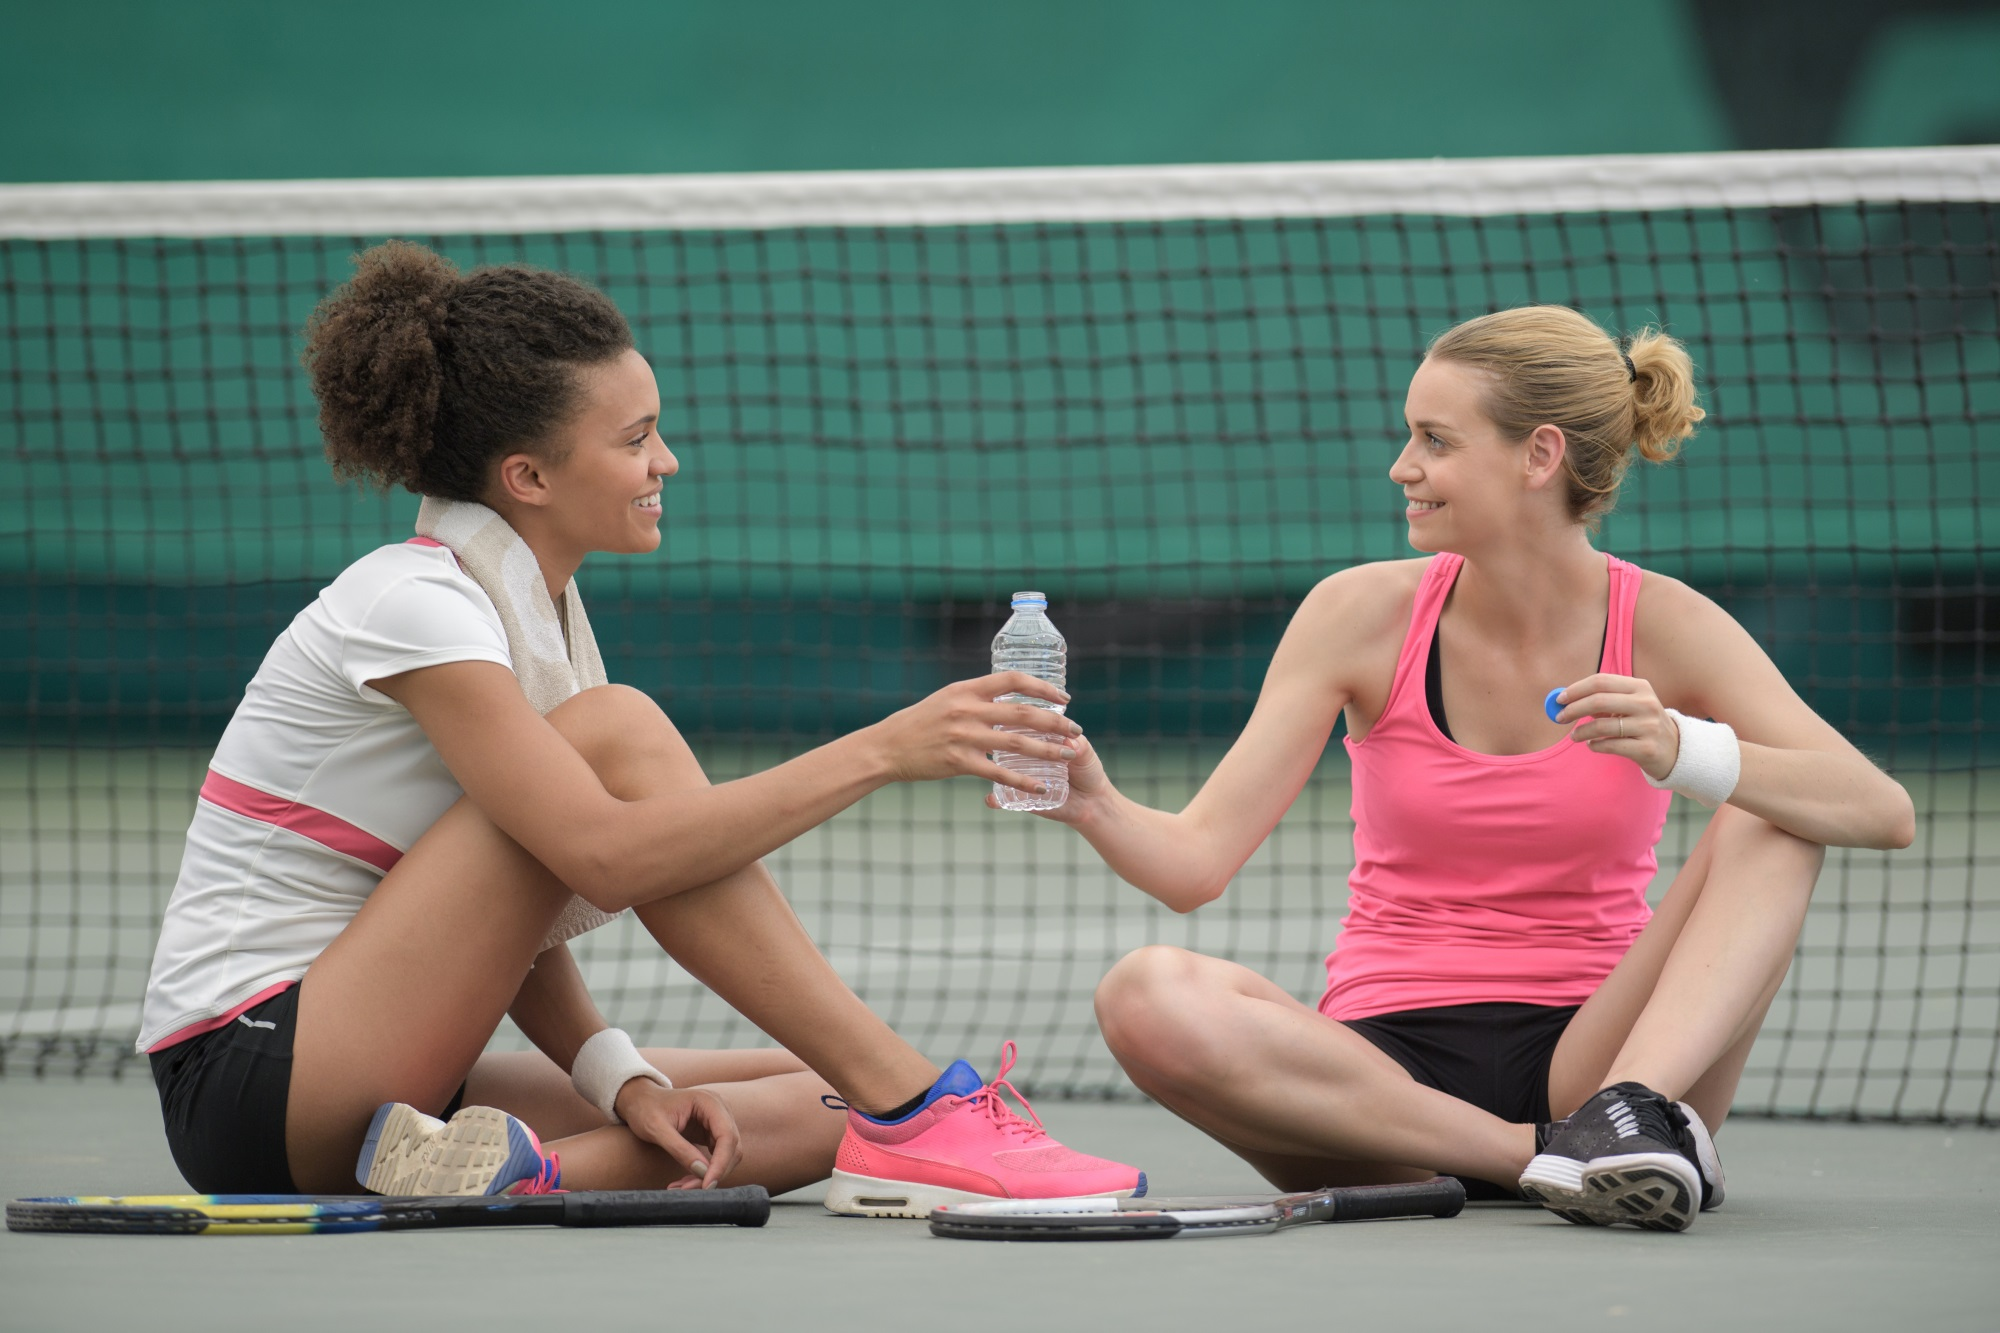 Women sharing a bottle of water on the tennis court